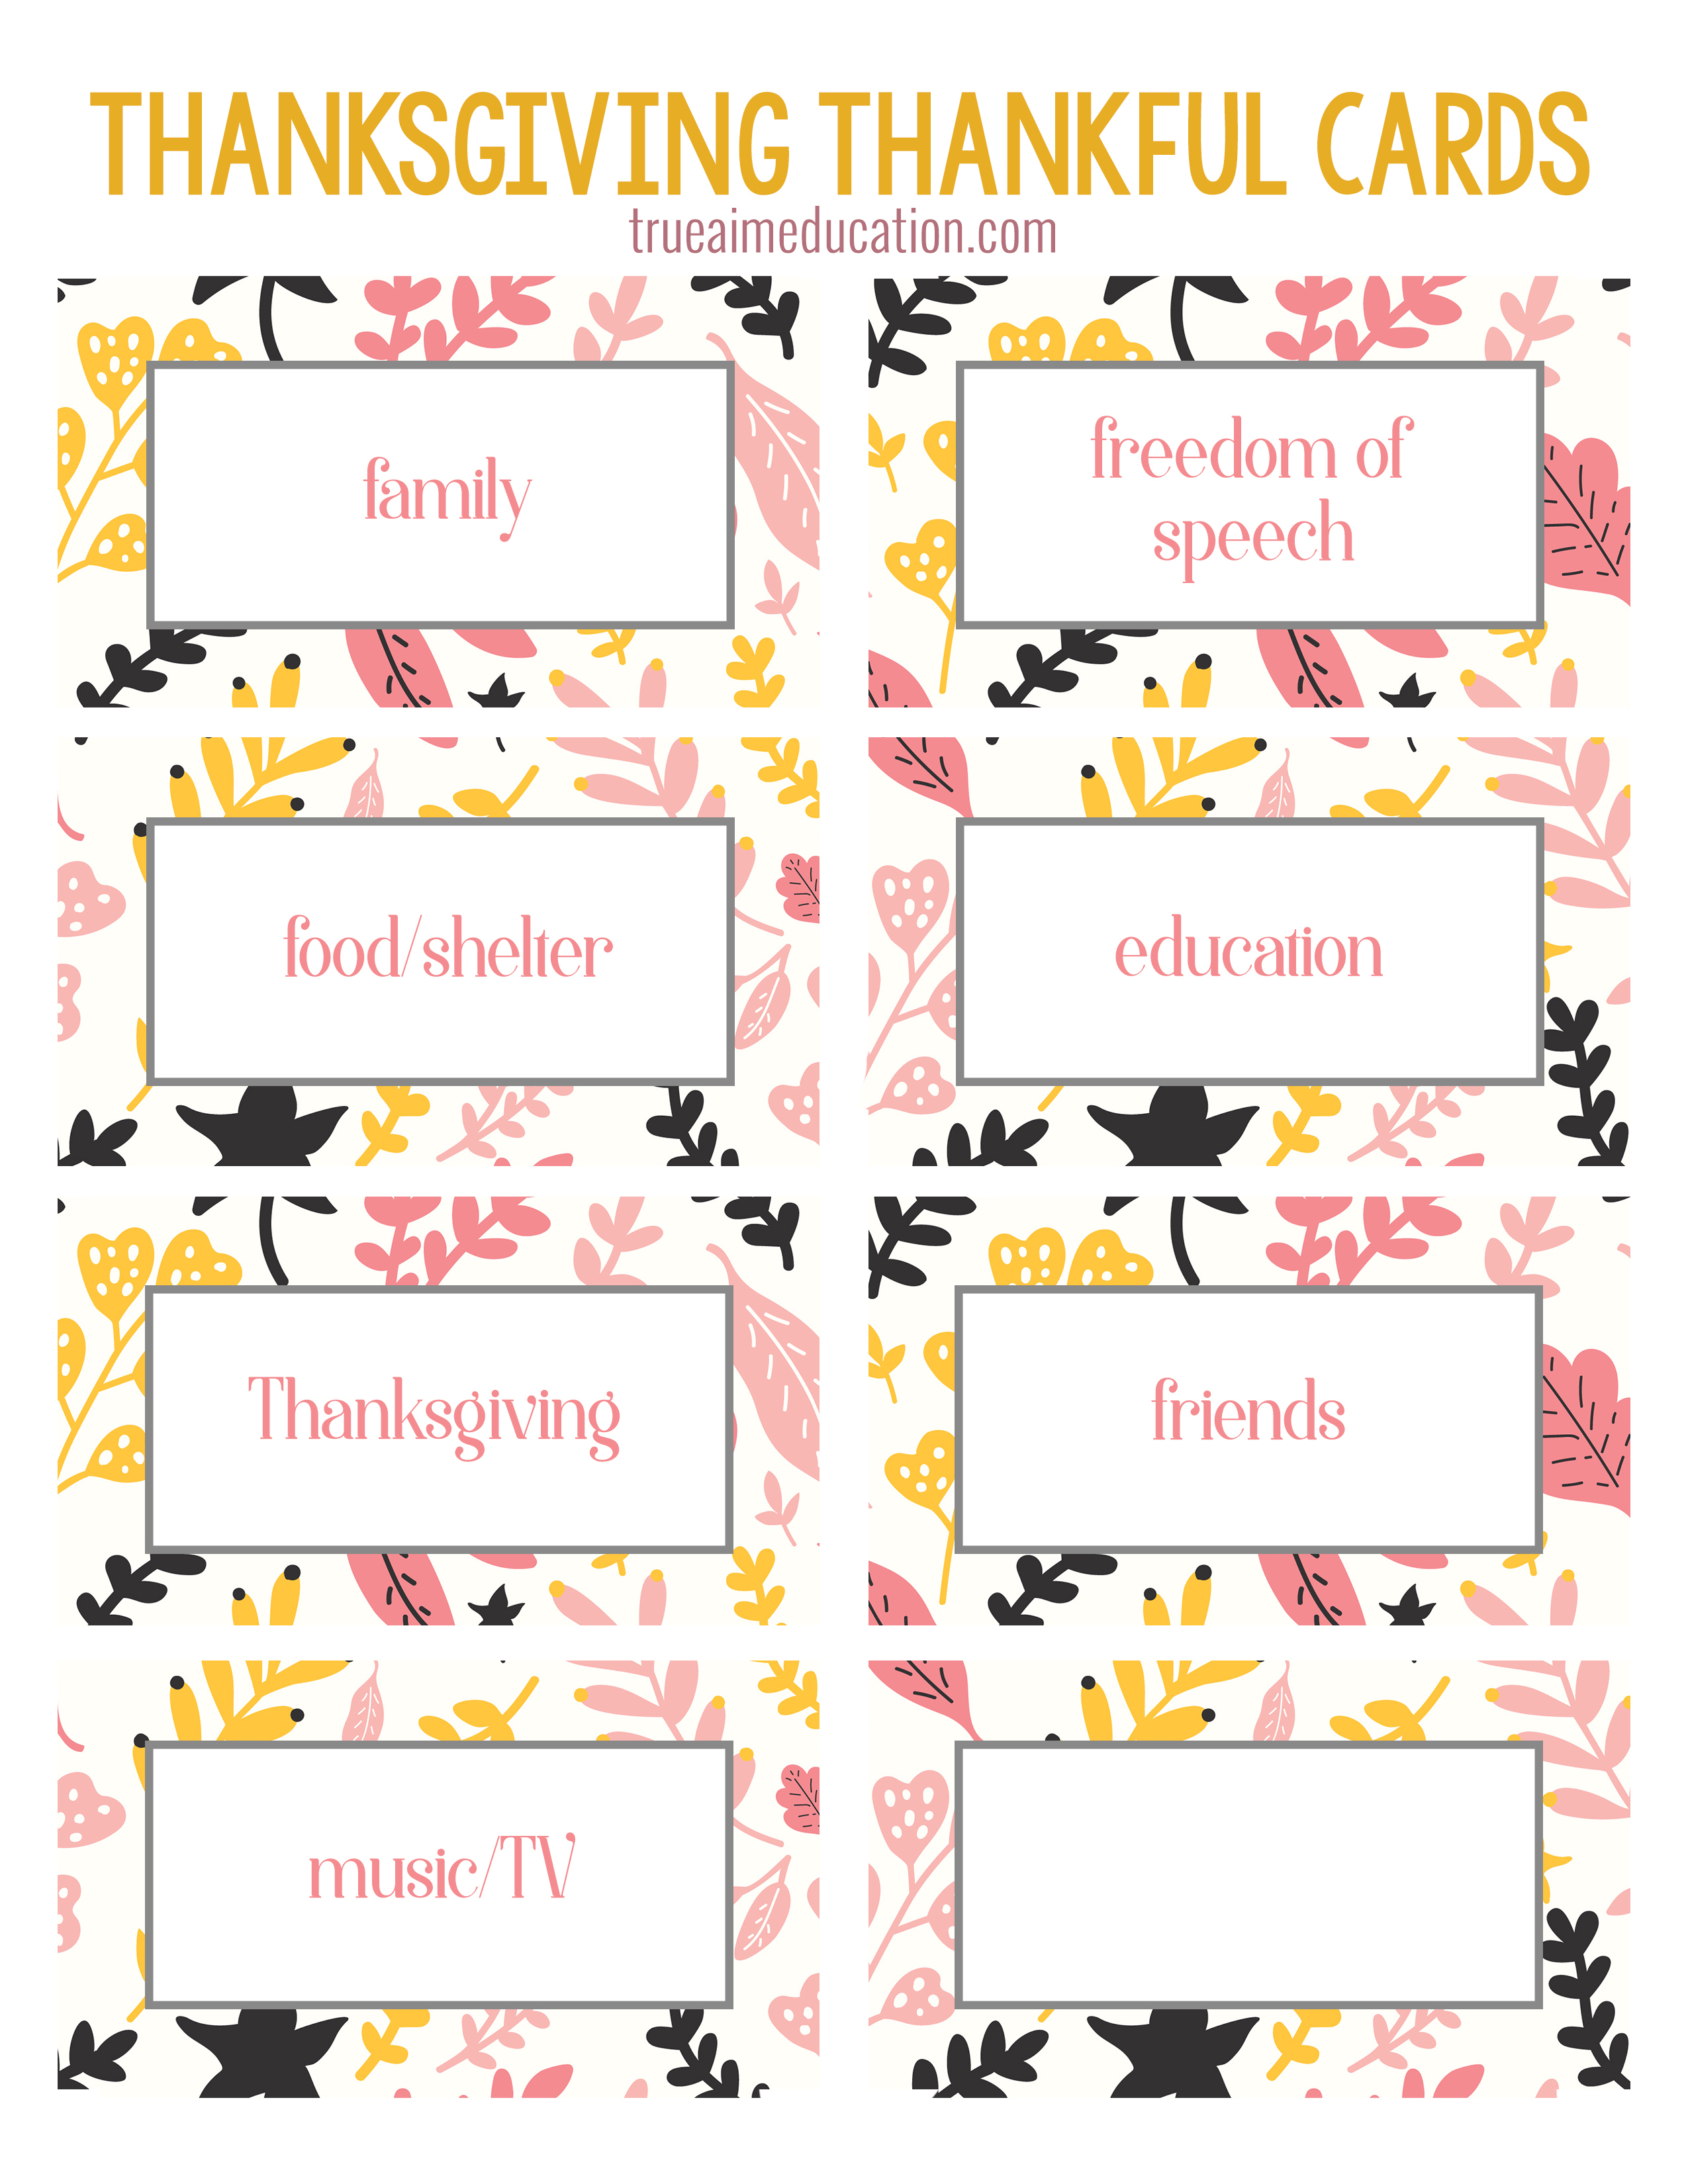 Thanksgiving Thankfulness With Free Printable Cards - Free Printable Cards